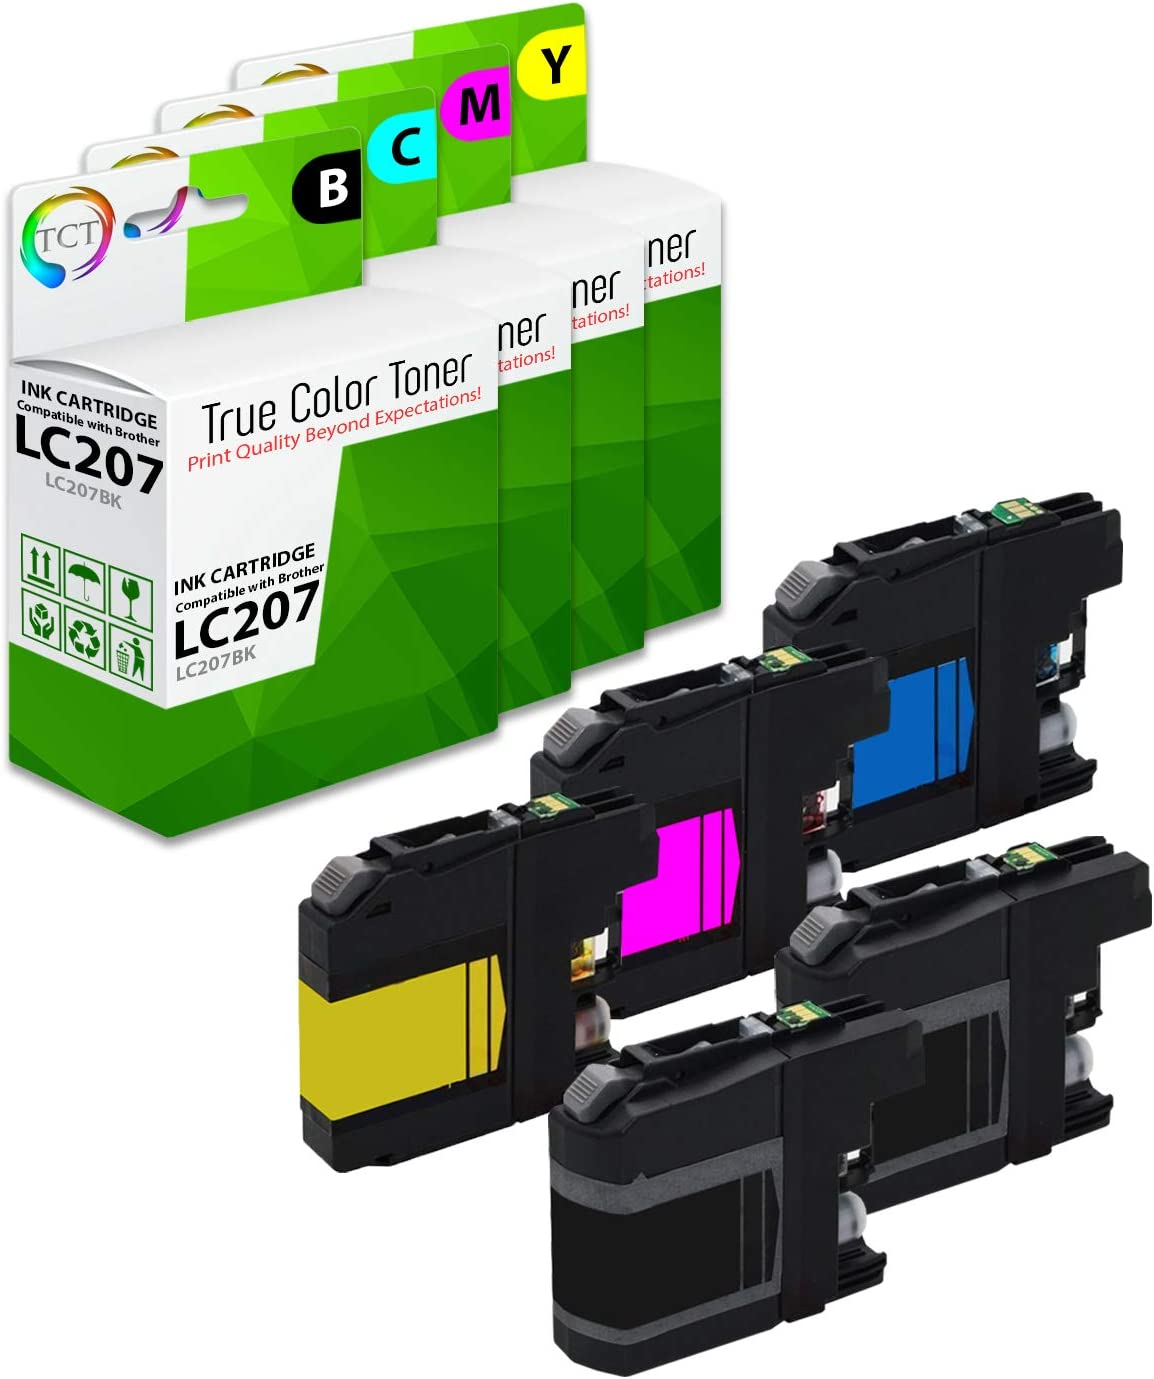 20 Pack Smart Print Supplies Compatible LC207 LC205 LC207BK LC205C LC205M LC205Y Ink Cartridge Replacement for Brother MFC-J4320DW J4420DW J4620DW Printers Black, Cyan, Magenta, Yellow